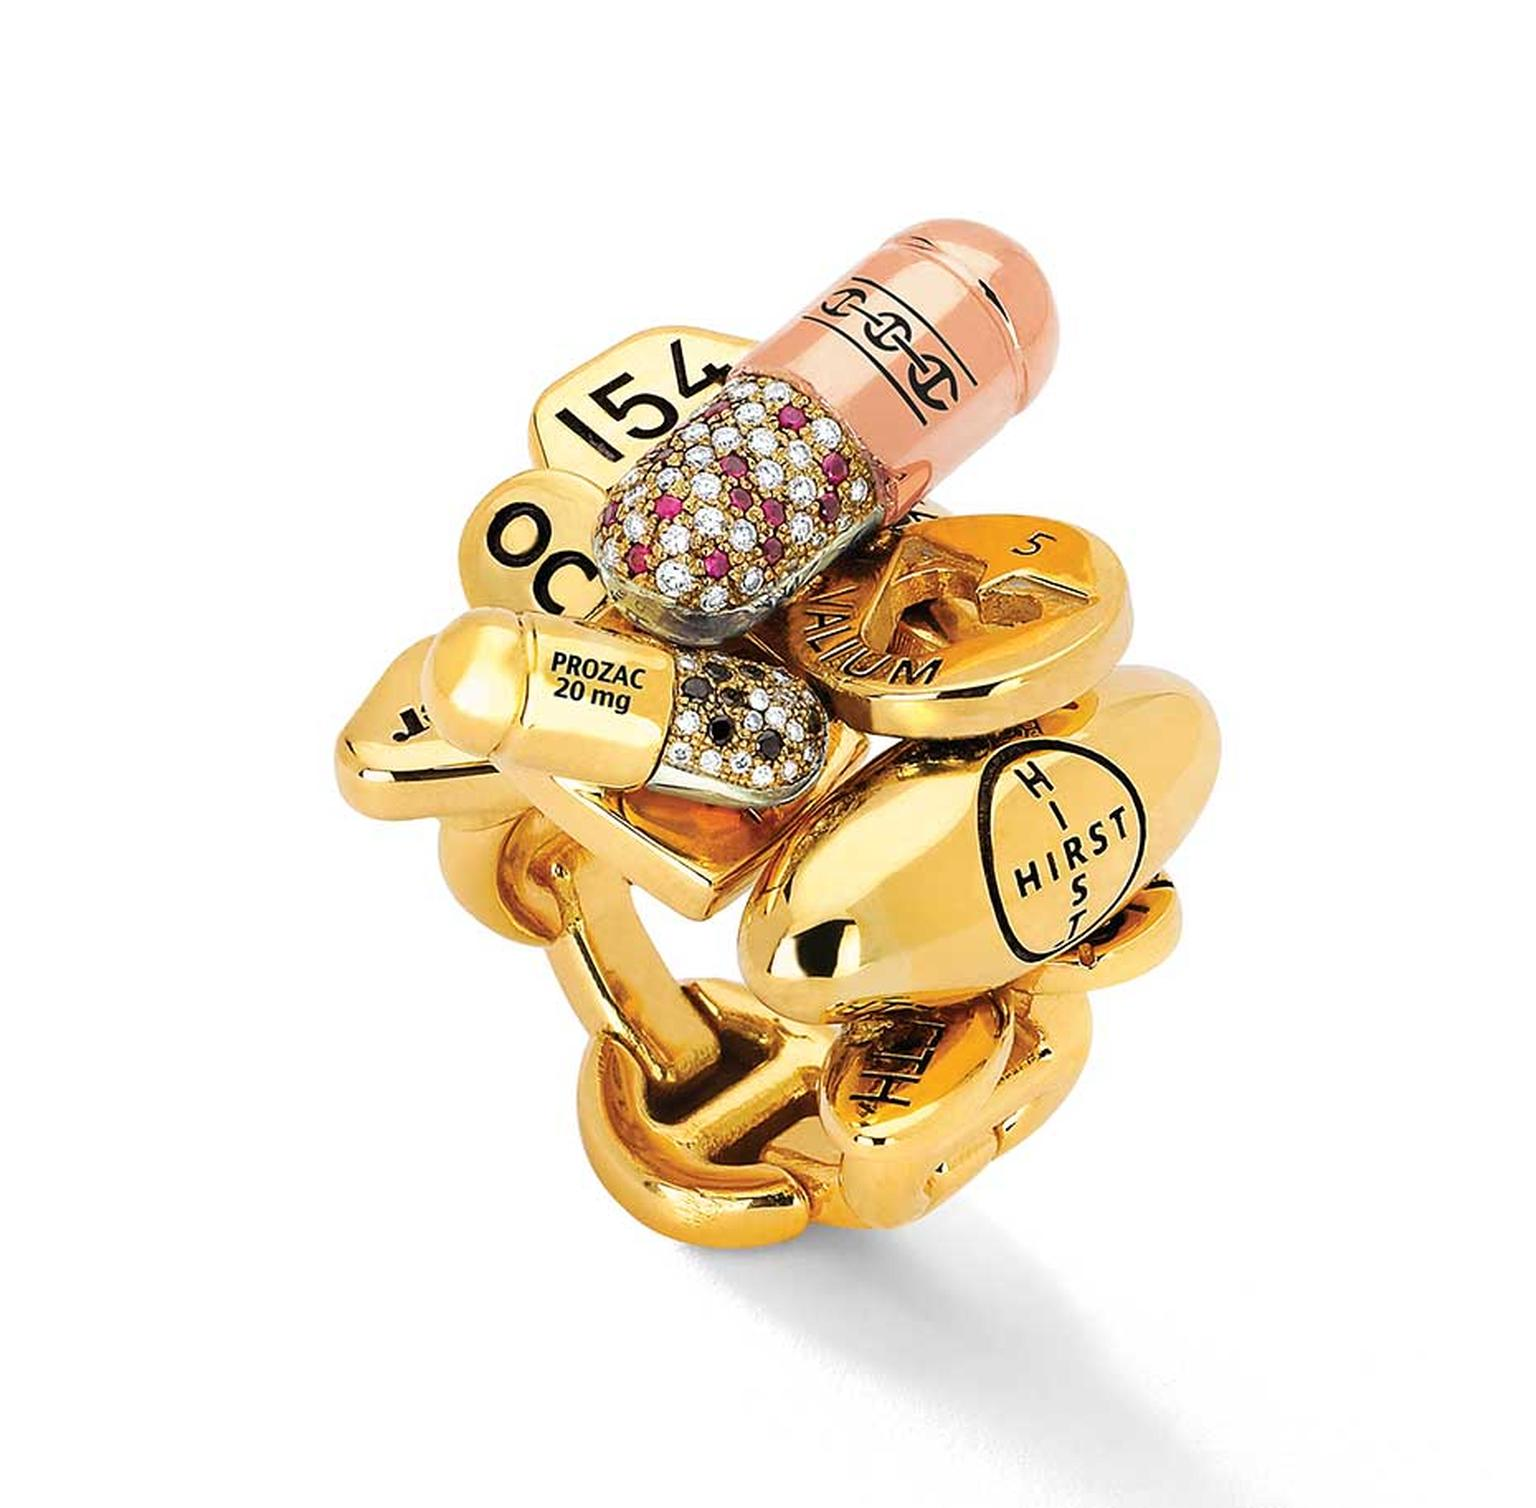 Hoorsenbuhs limited-edition Pill ring, created in collaboration with British artist Damien Hirst, colorfully mixes rose, yellow and white gold with rubies and black and white diamonds with the brand's signature links.